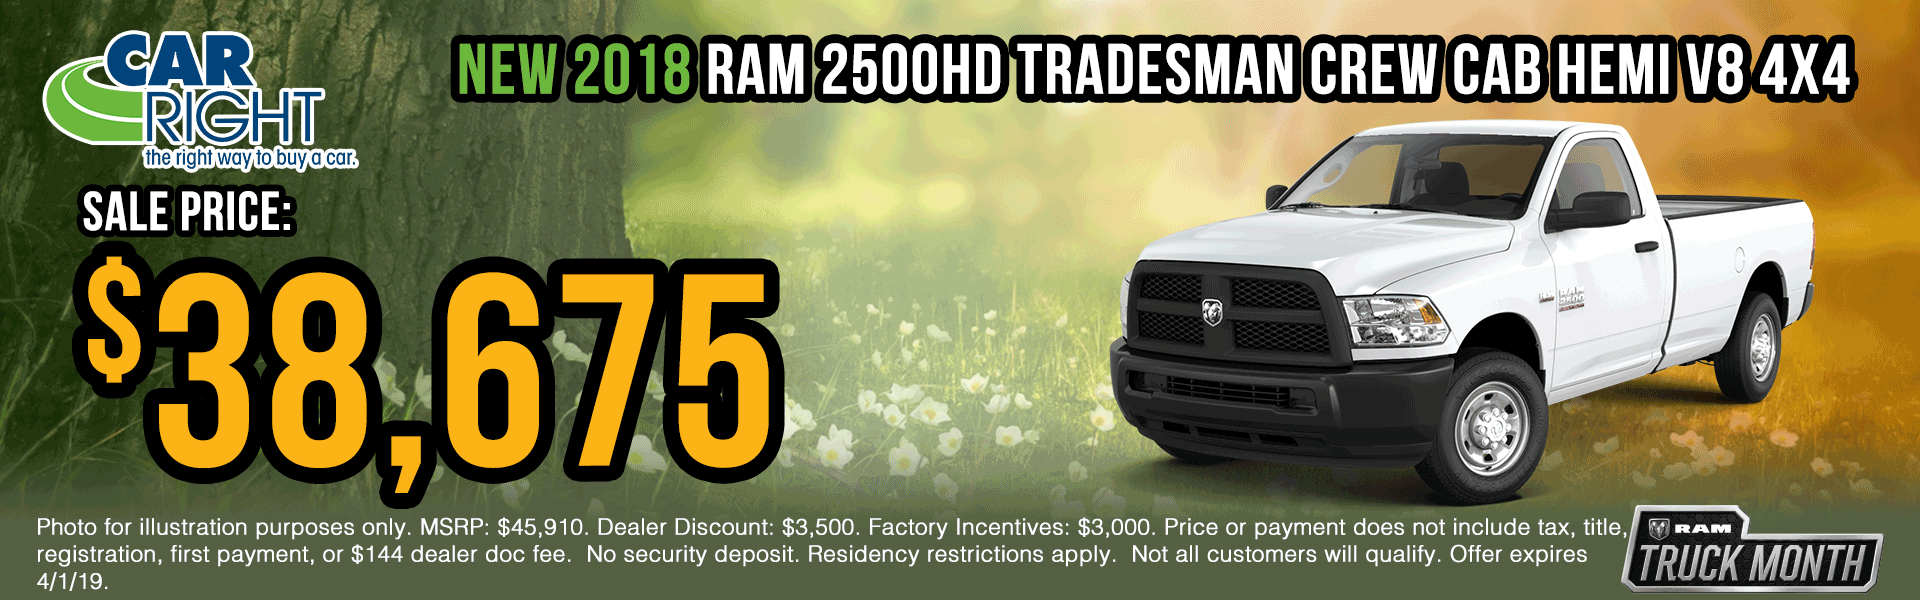 B0022-2018-ram-2500-tradesman-crew-cab Spring sales event ram truck month jeep specials Chrysler specials ram specials dodge specials mopar specials new vehicle specials carright specials moon twp